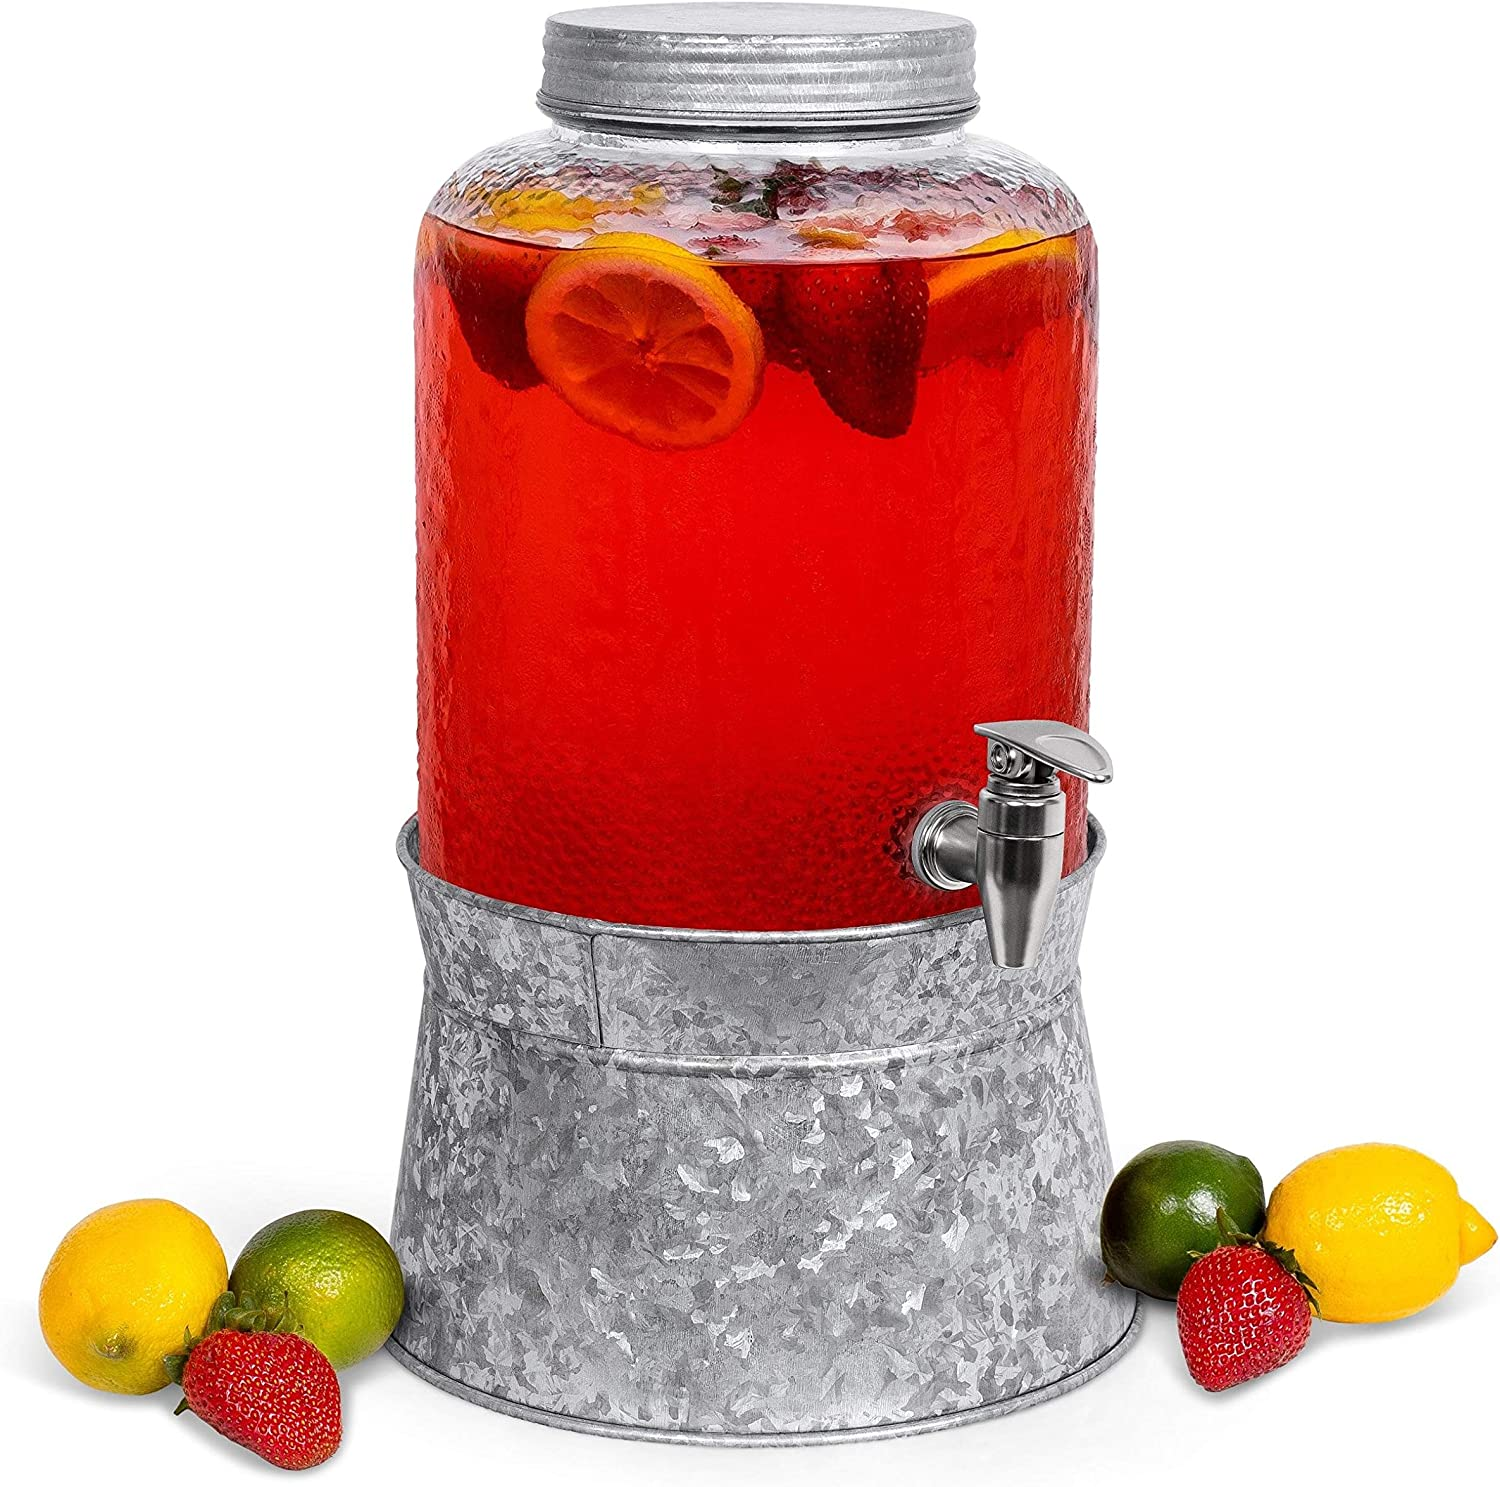 BirdRock Home 2.5 Gallon Pebbled Glass Beverage Dispenser with Galvanized Stand - Lid - Spigot - Decorative Round Jar for Drinks - Lemonade Sangria Tea Water Drink Jar Jug - Home Parties